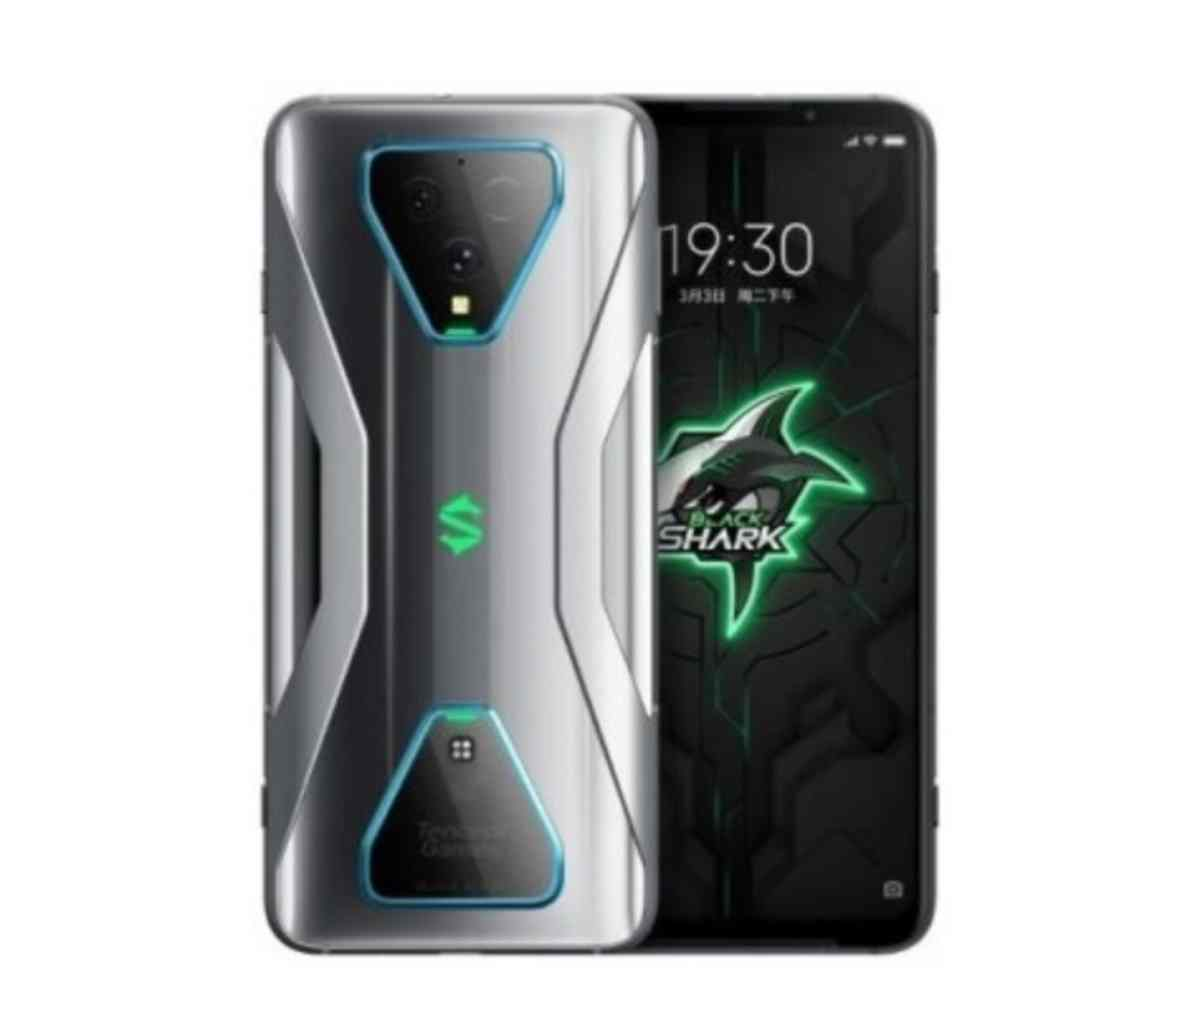 Xiaomi Black shark 3s, Black shark 3s, Xiaomi Black shark 3s price in Nigeria, price of Xiaomi Black shark 3s, how much is Xiaomi black shark 3s, Xiaomi Black shark 3s specs and price in Nigeria, xiaomi black shark 3s specs, price, Xiaomi Black Shark 3s full specification